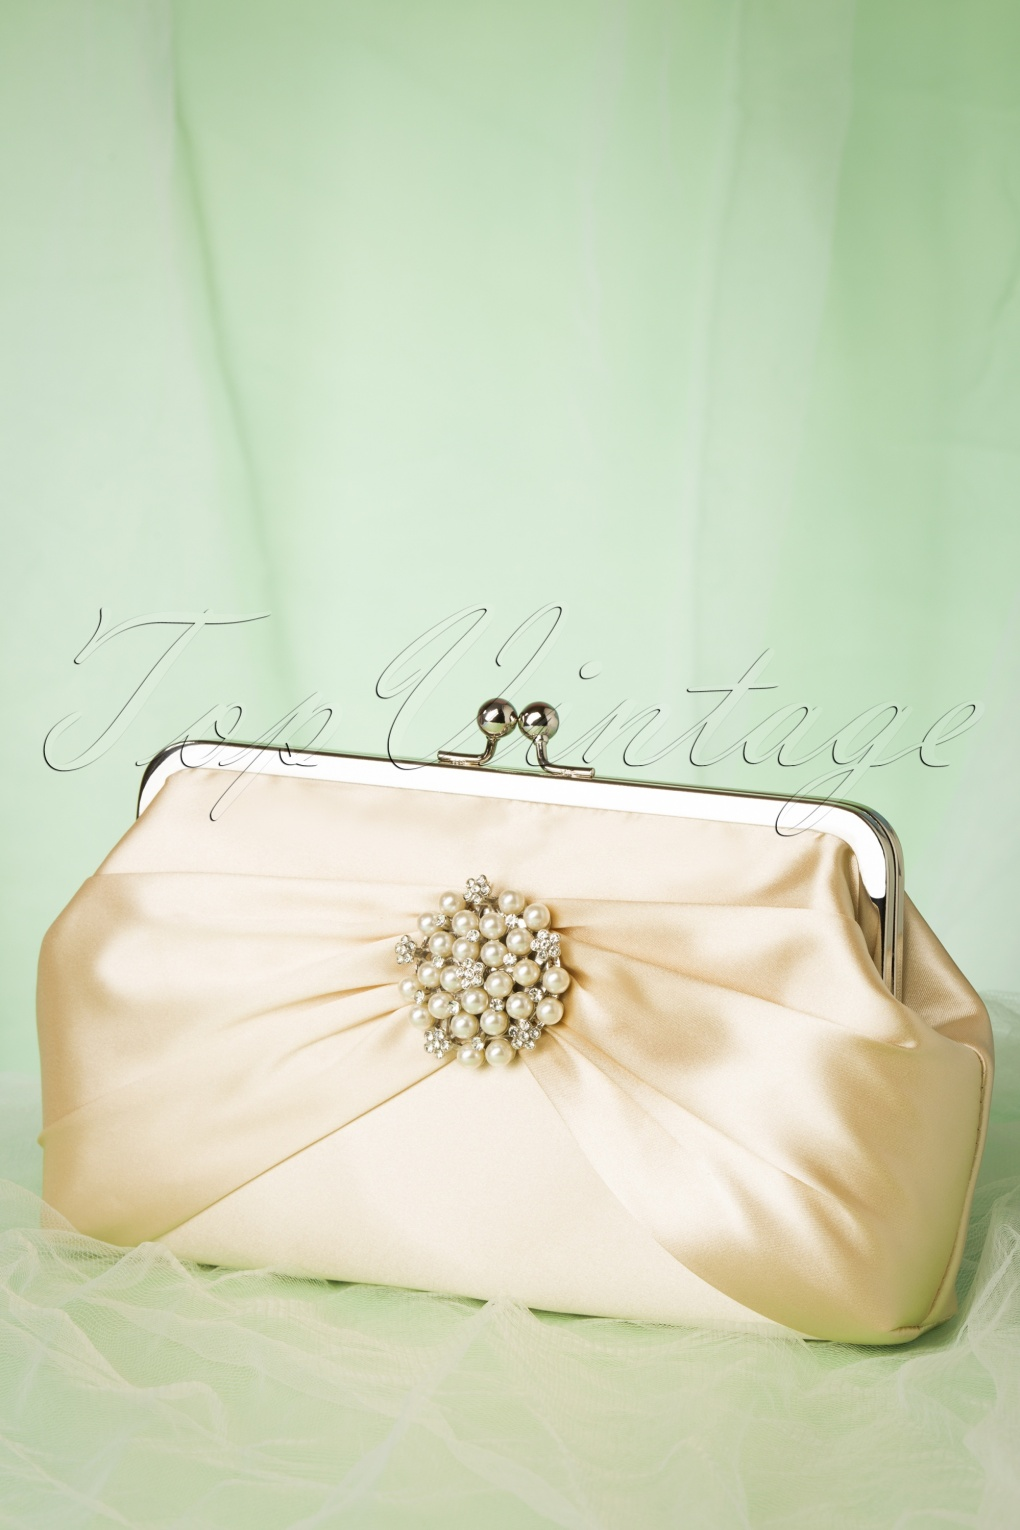 Vintage & Retro Handbags, Purses, Wallets, Bags 50s Audrey Pearl Clutch in Cream �44.11 AT vintagedancer.com